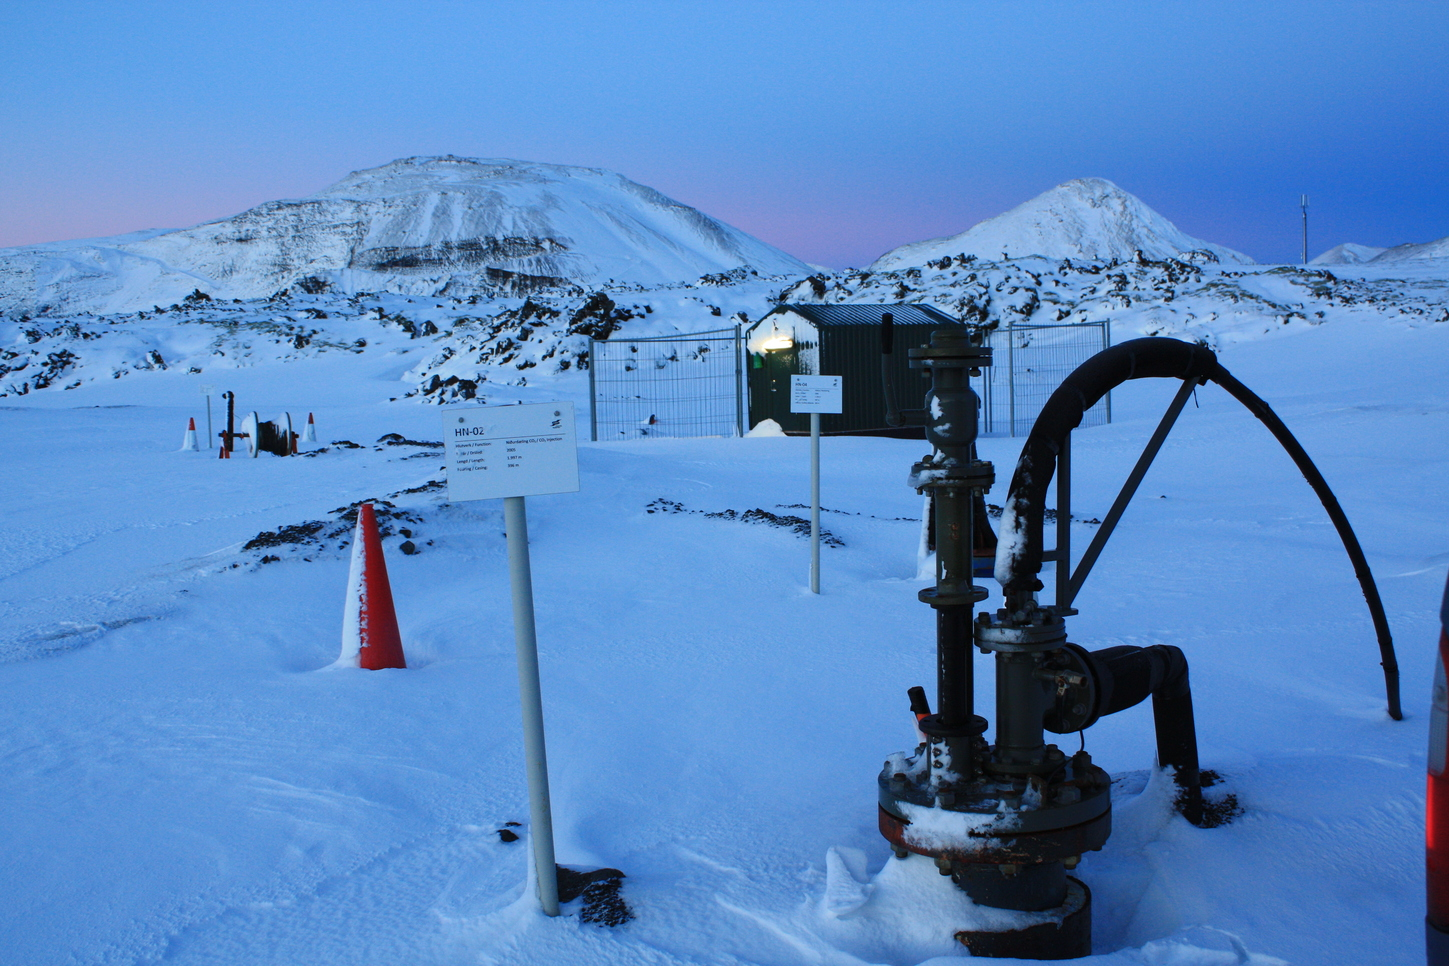 The injection well with monitoring station in the background. Dom Wolff-Boenisch, Author provided